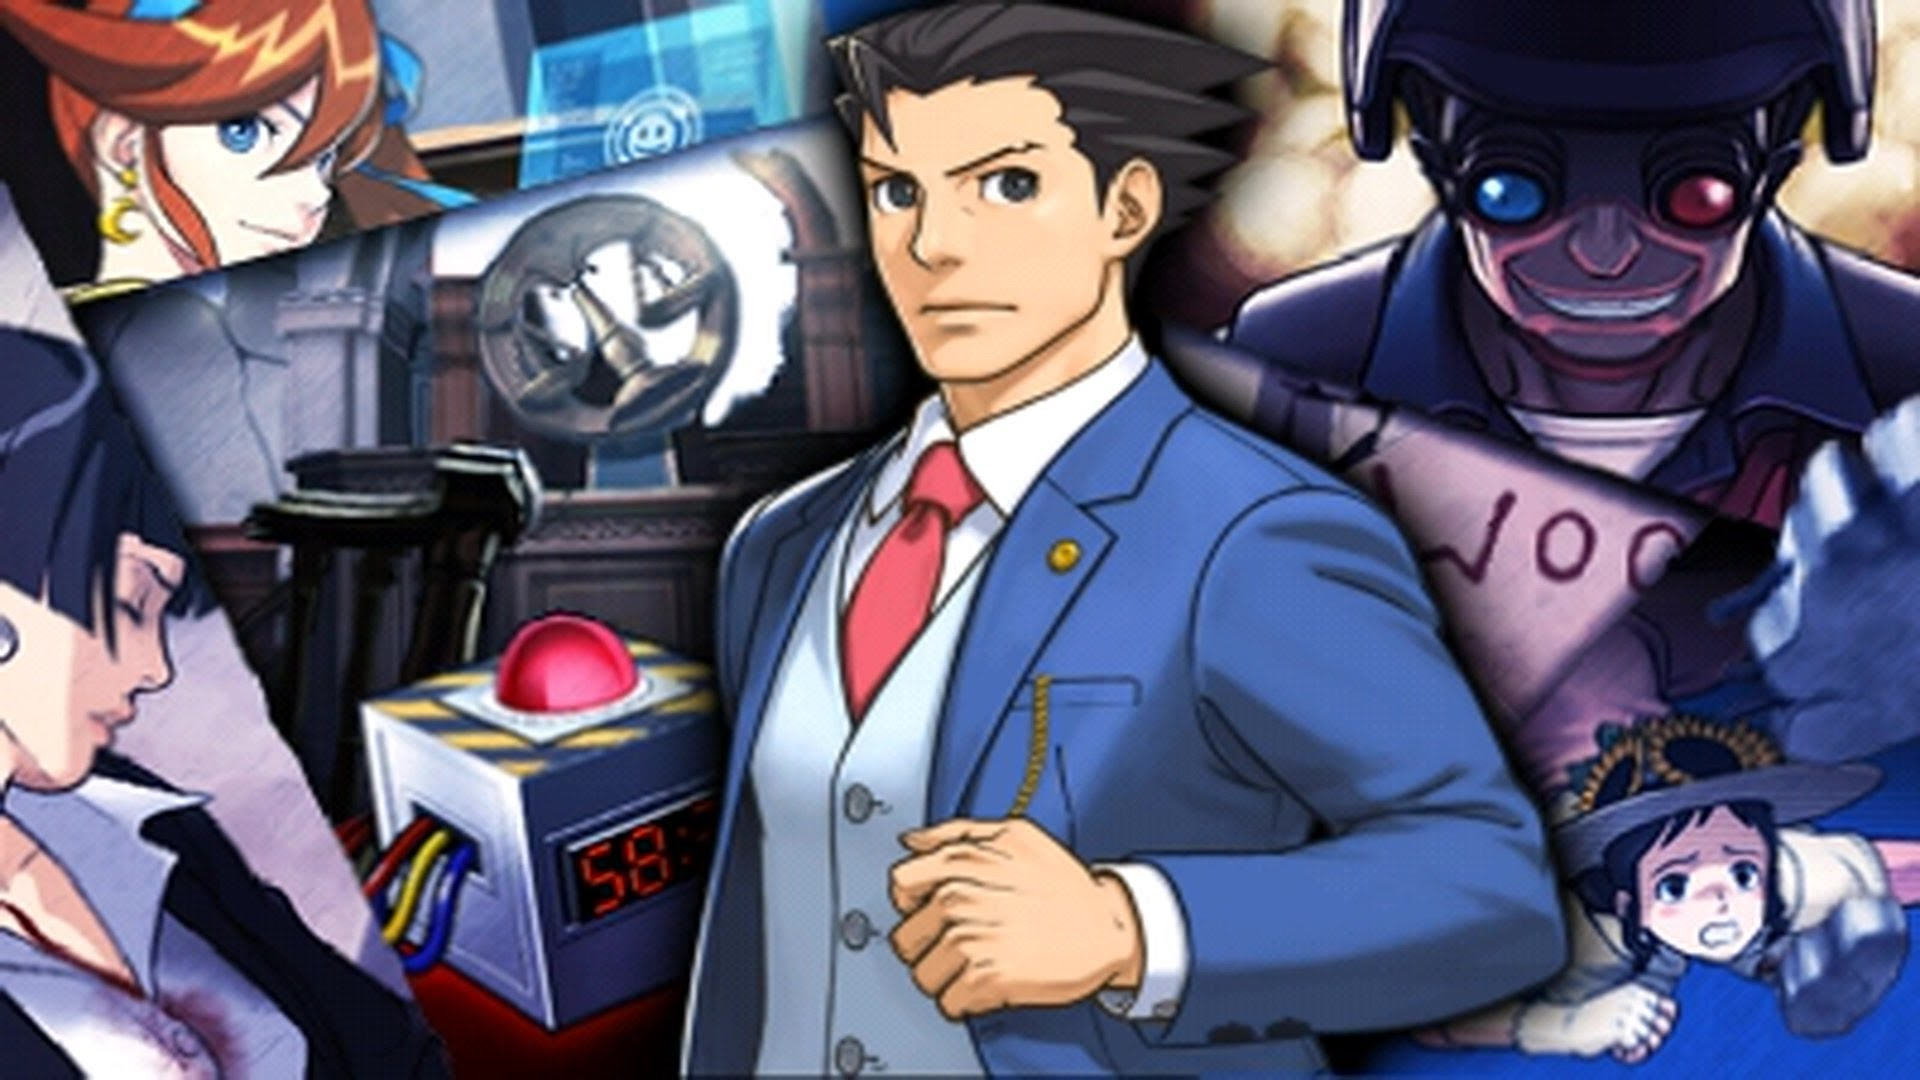 Ace Attorney 6 Announced Confirmed For Western Release Eggplante